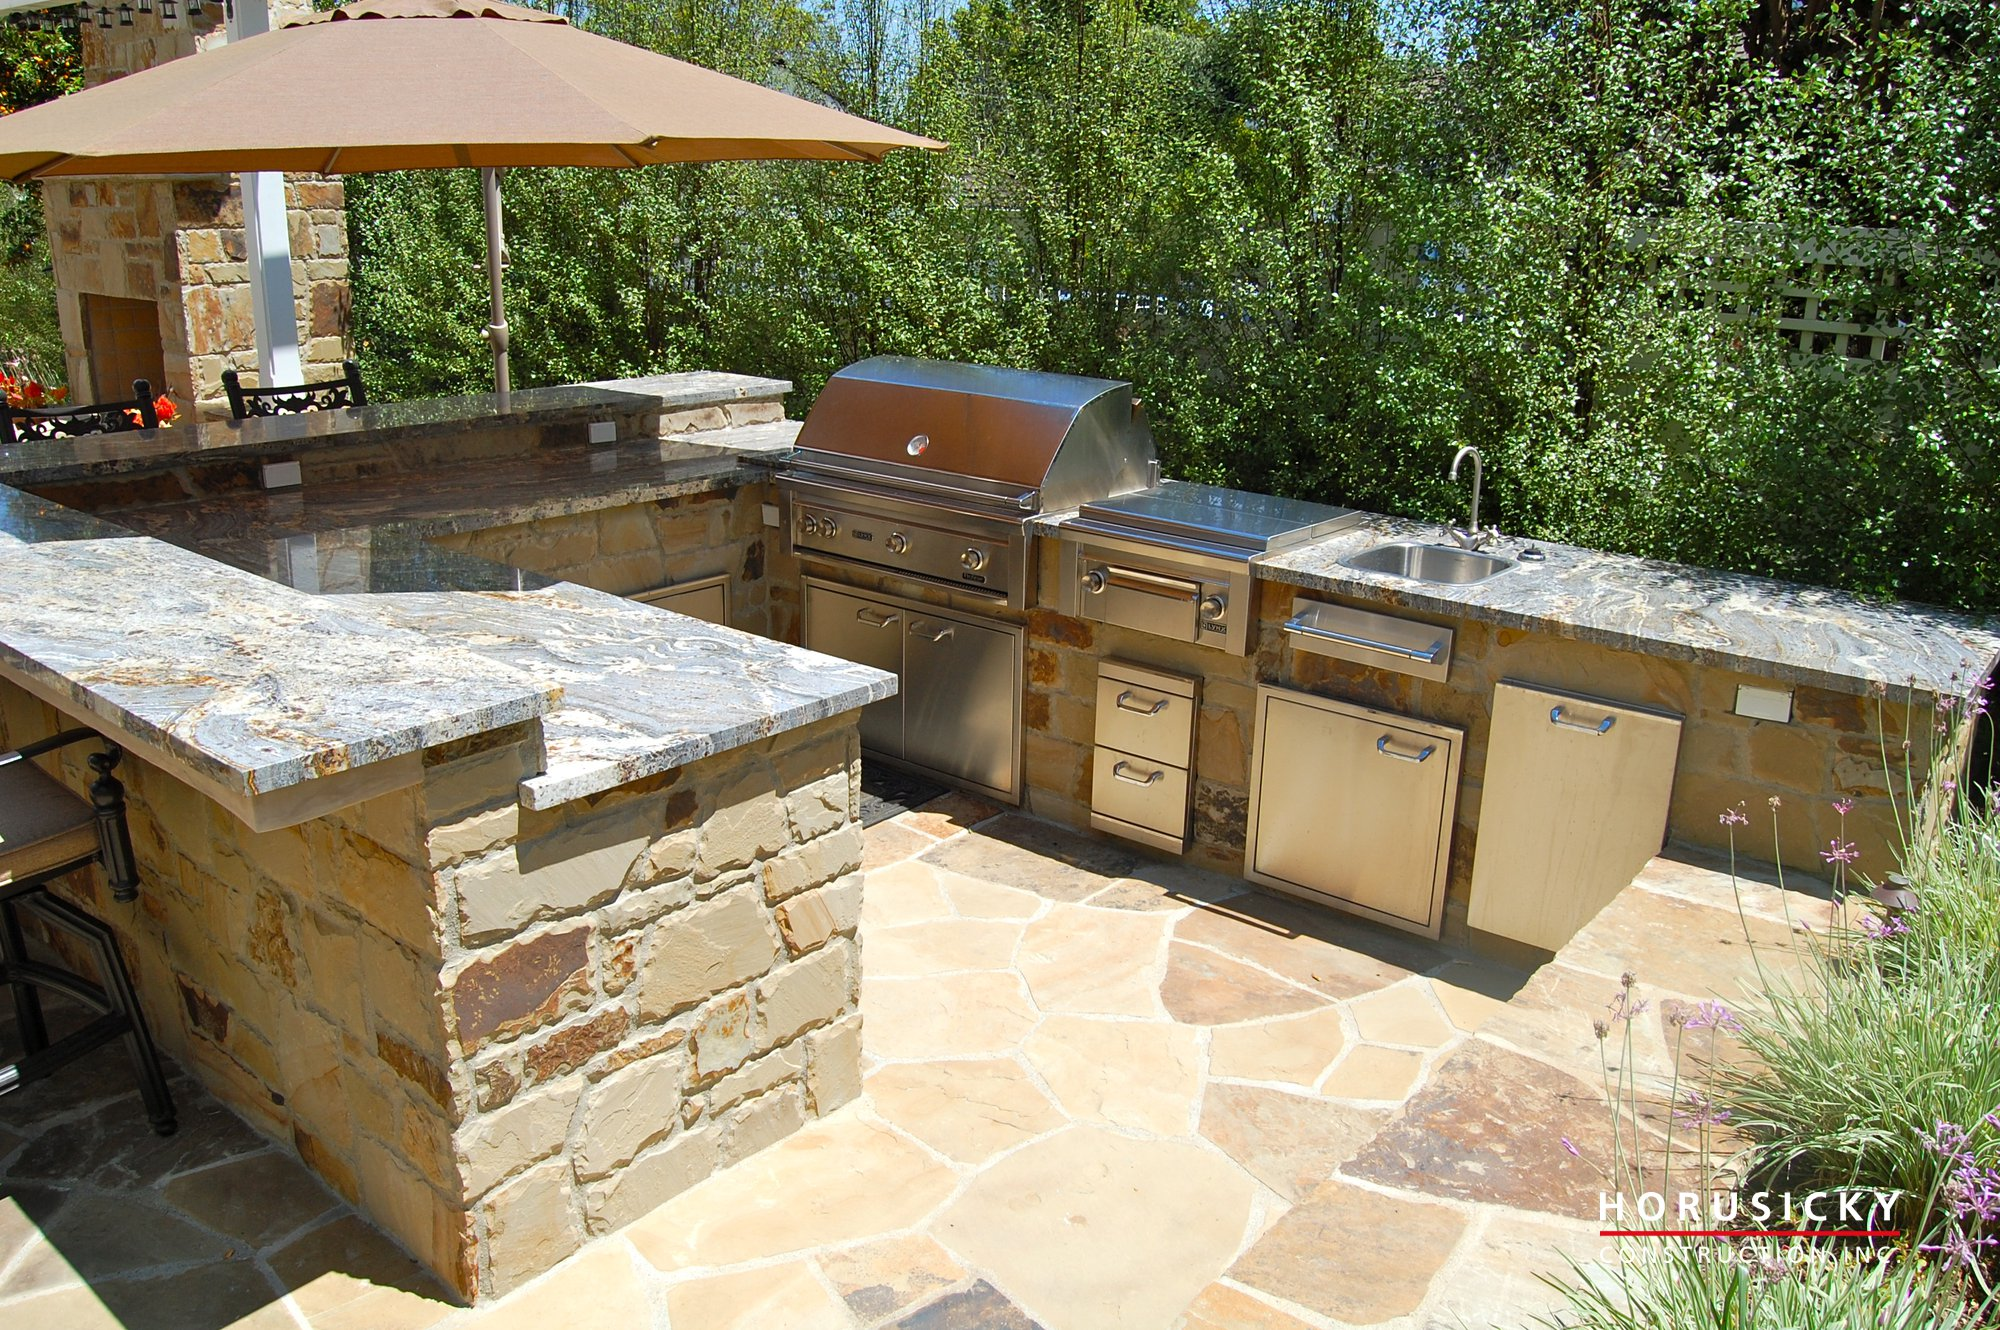 Outdoor Kitchens and BBQ Grills - Horusicky Construction on Backyard Patio Grill Island id=14279